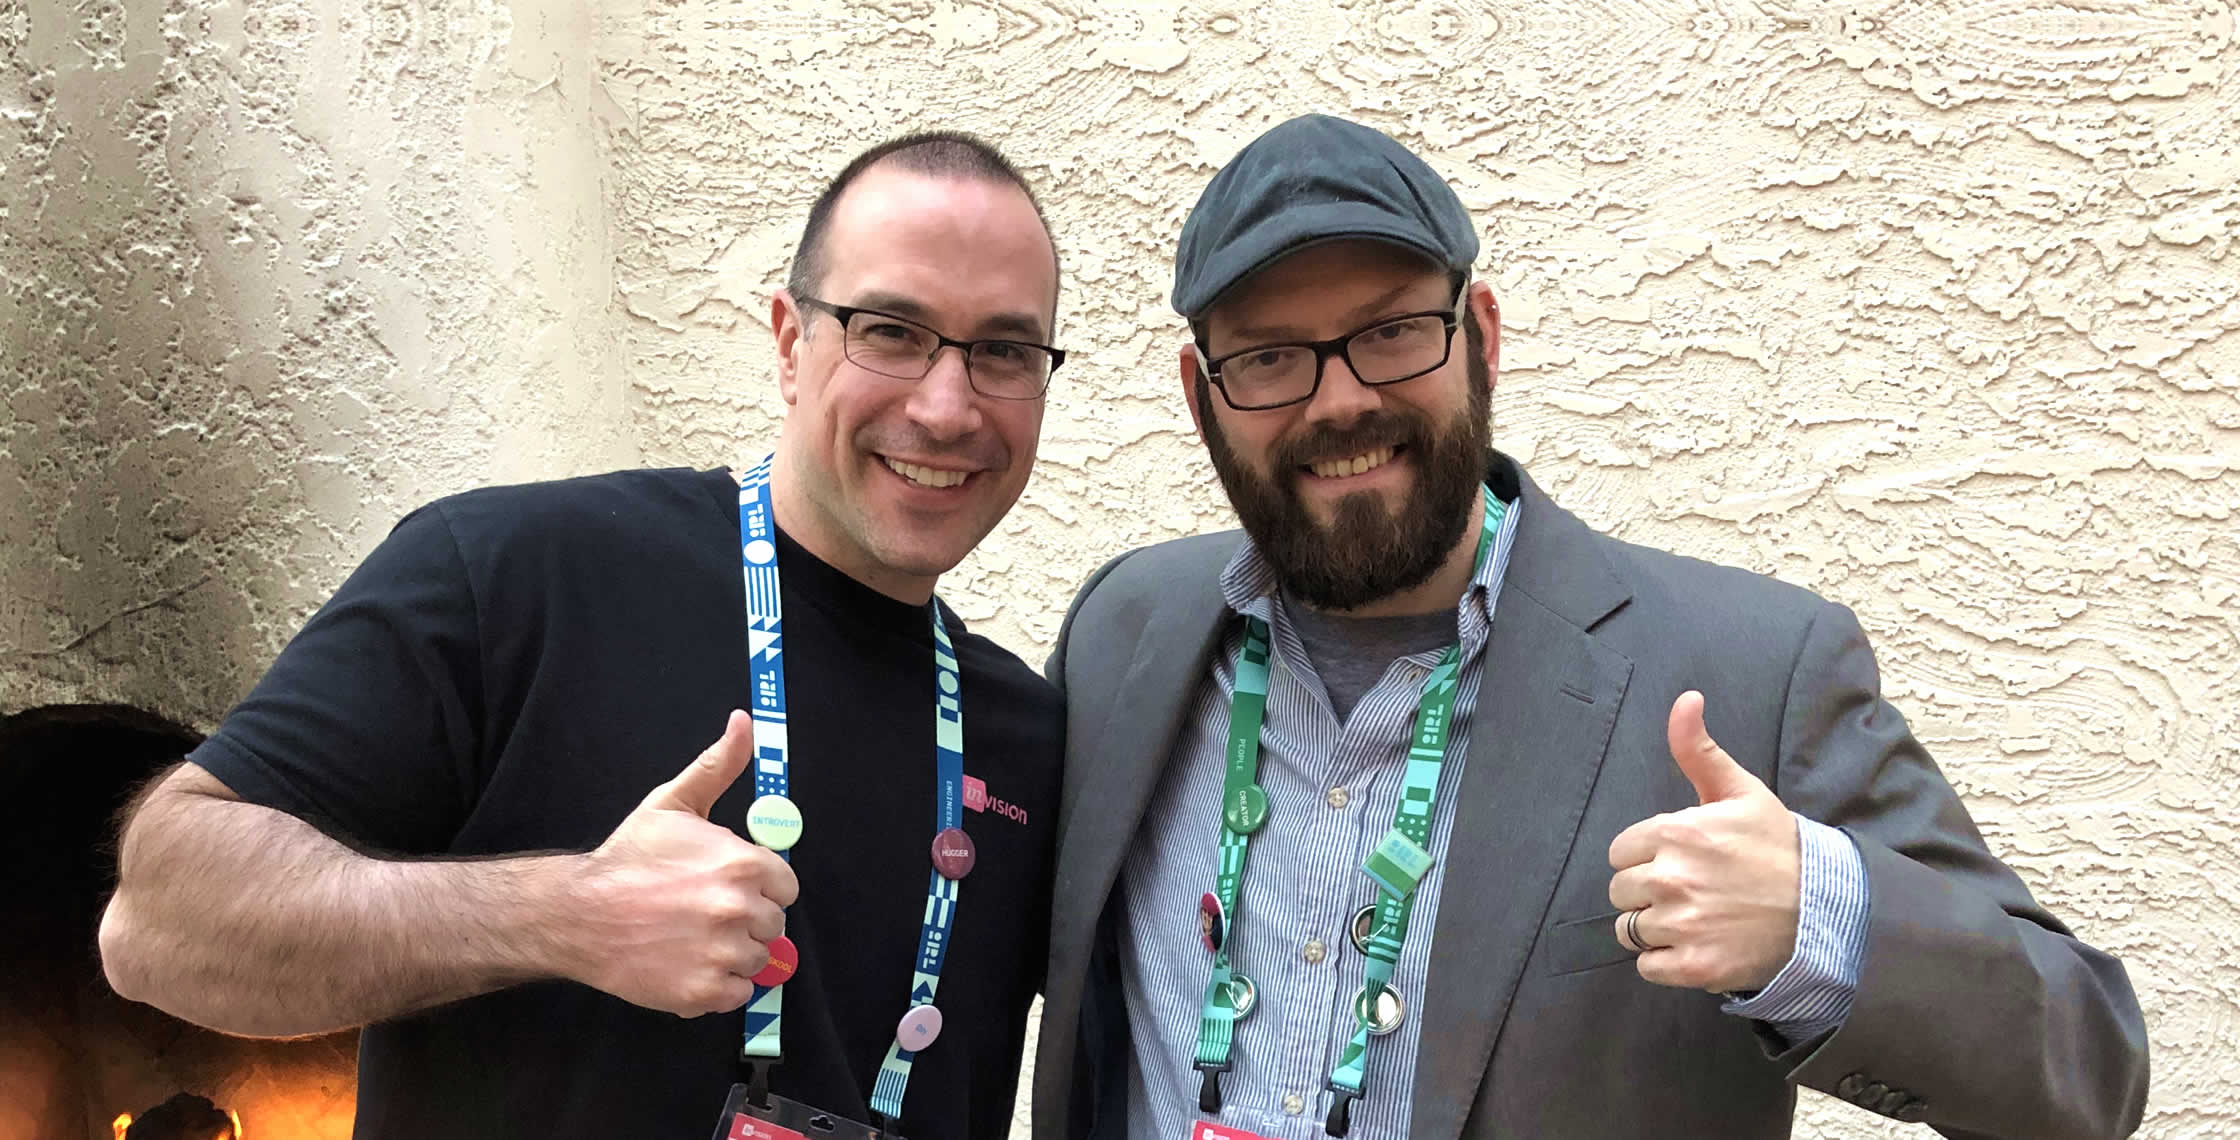 Ben Nadel at InVision In Real Life (IRL) 2019 (Phoenix, AZ) with: Dennis Field